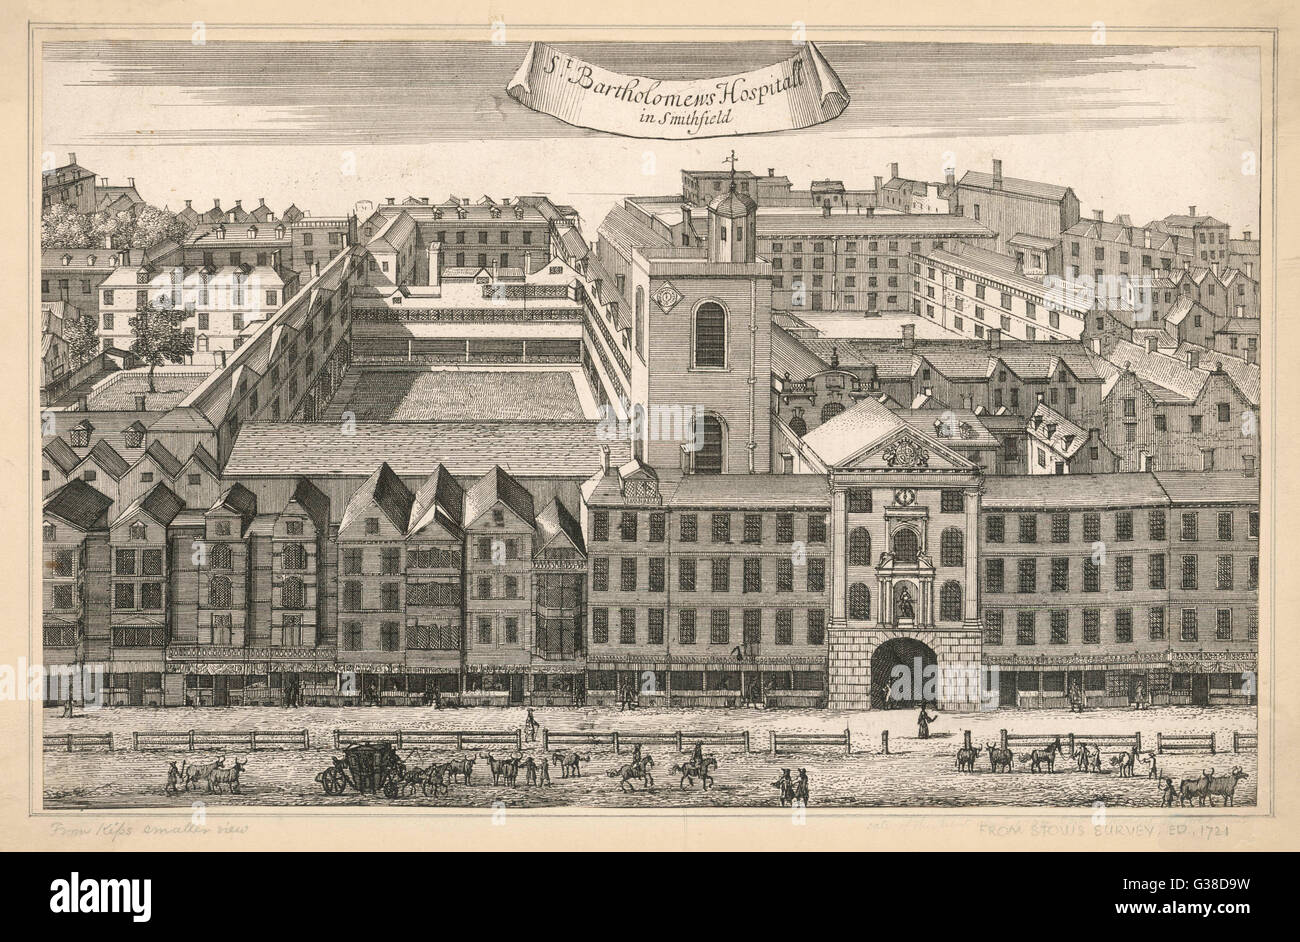 A general external view of the  buildings which make up  Saint Bartholomew's Hospital  in Smithfield, London. - Stock Image